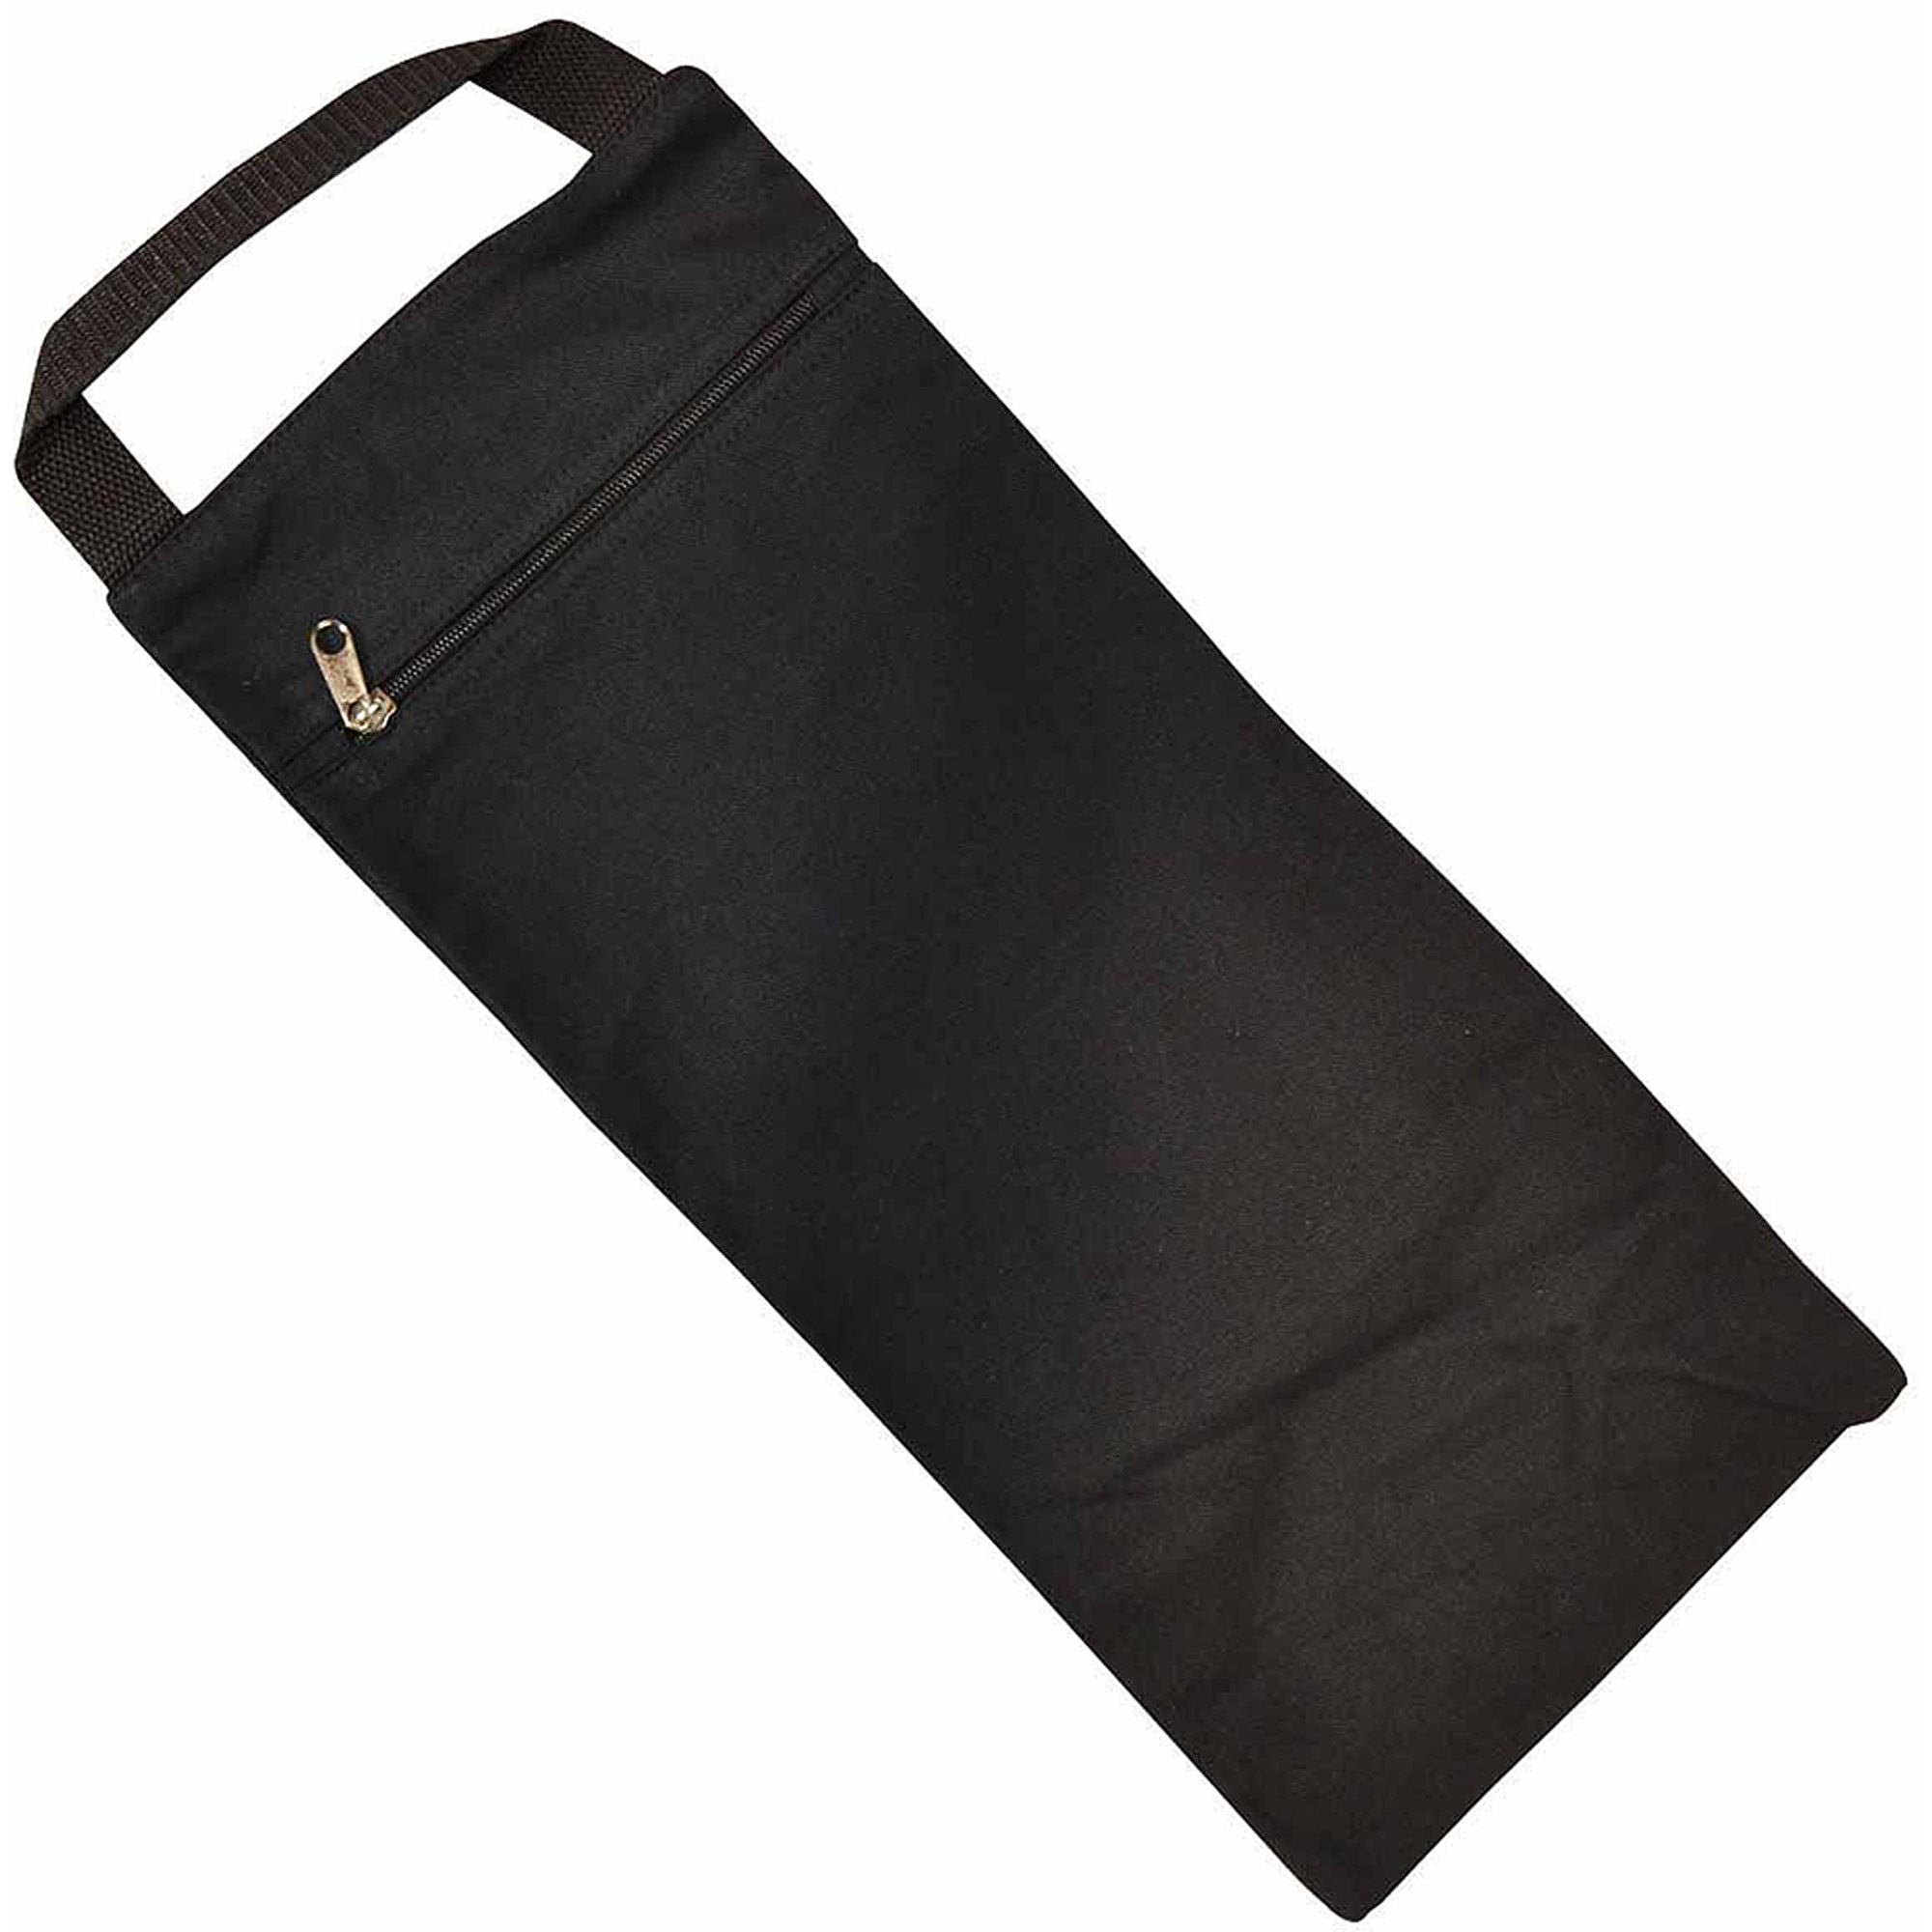 Yoga Direct Unfilled Sandbag for Yoga and Pilates